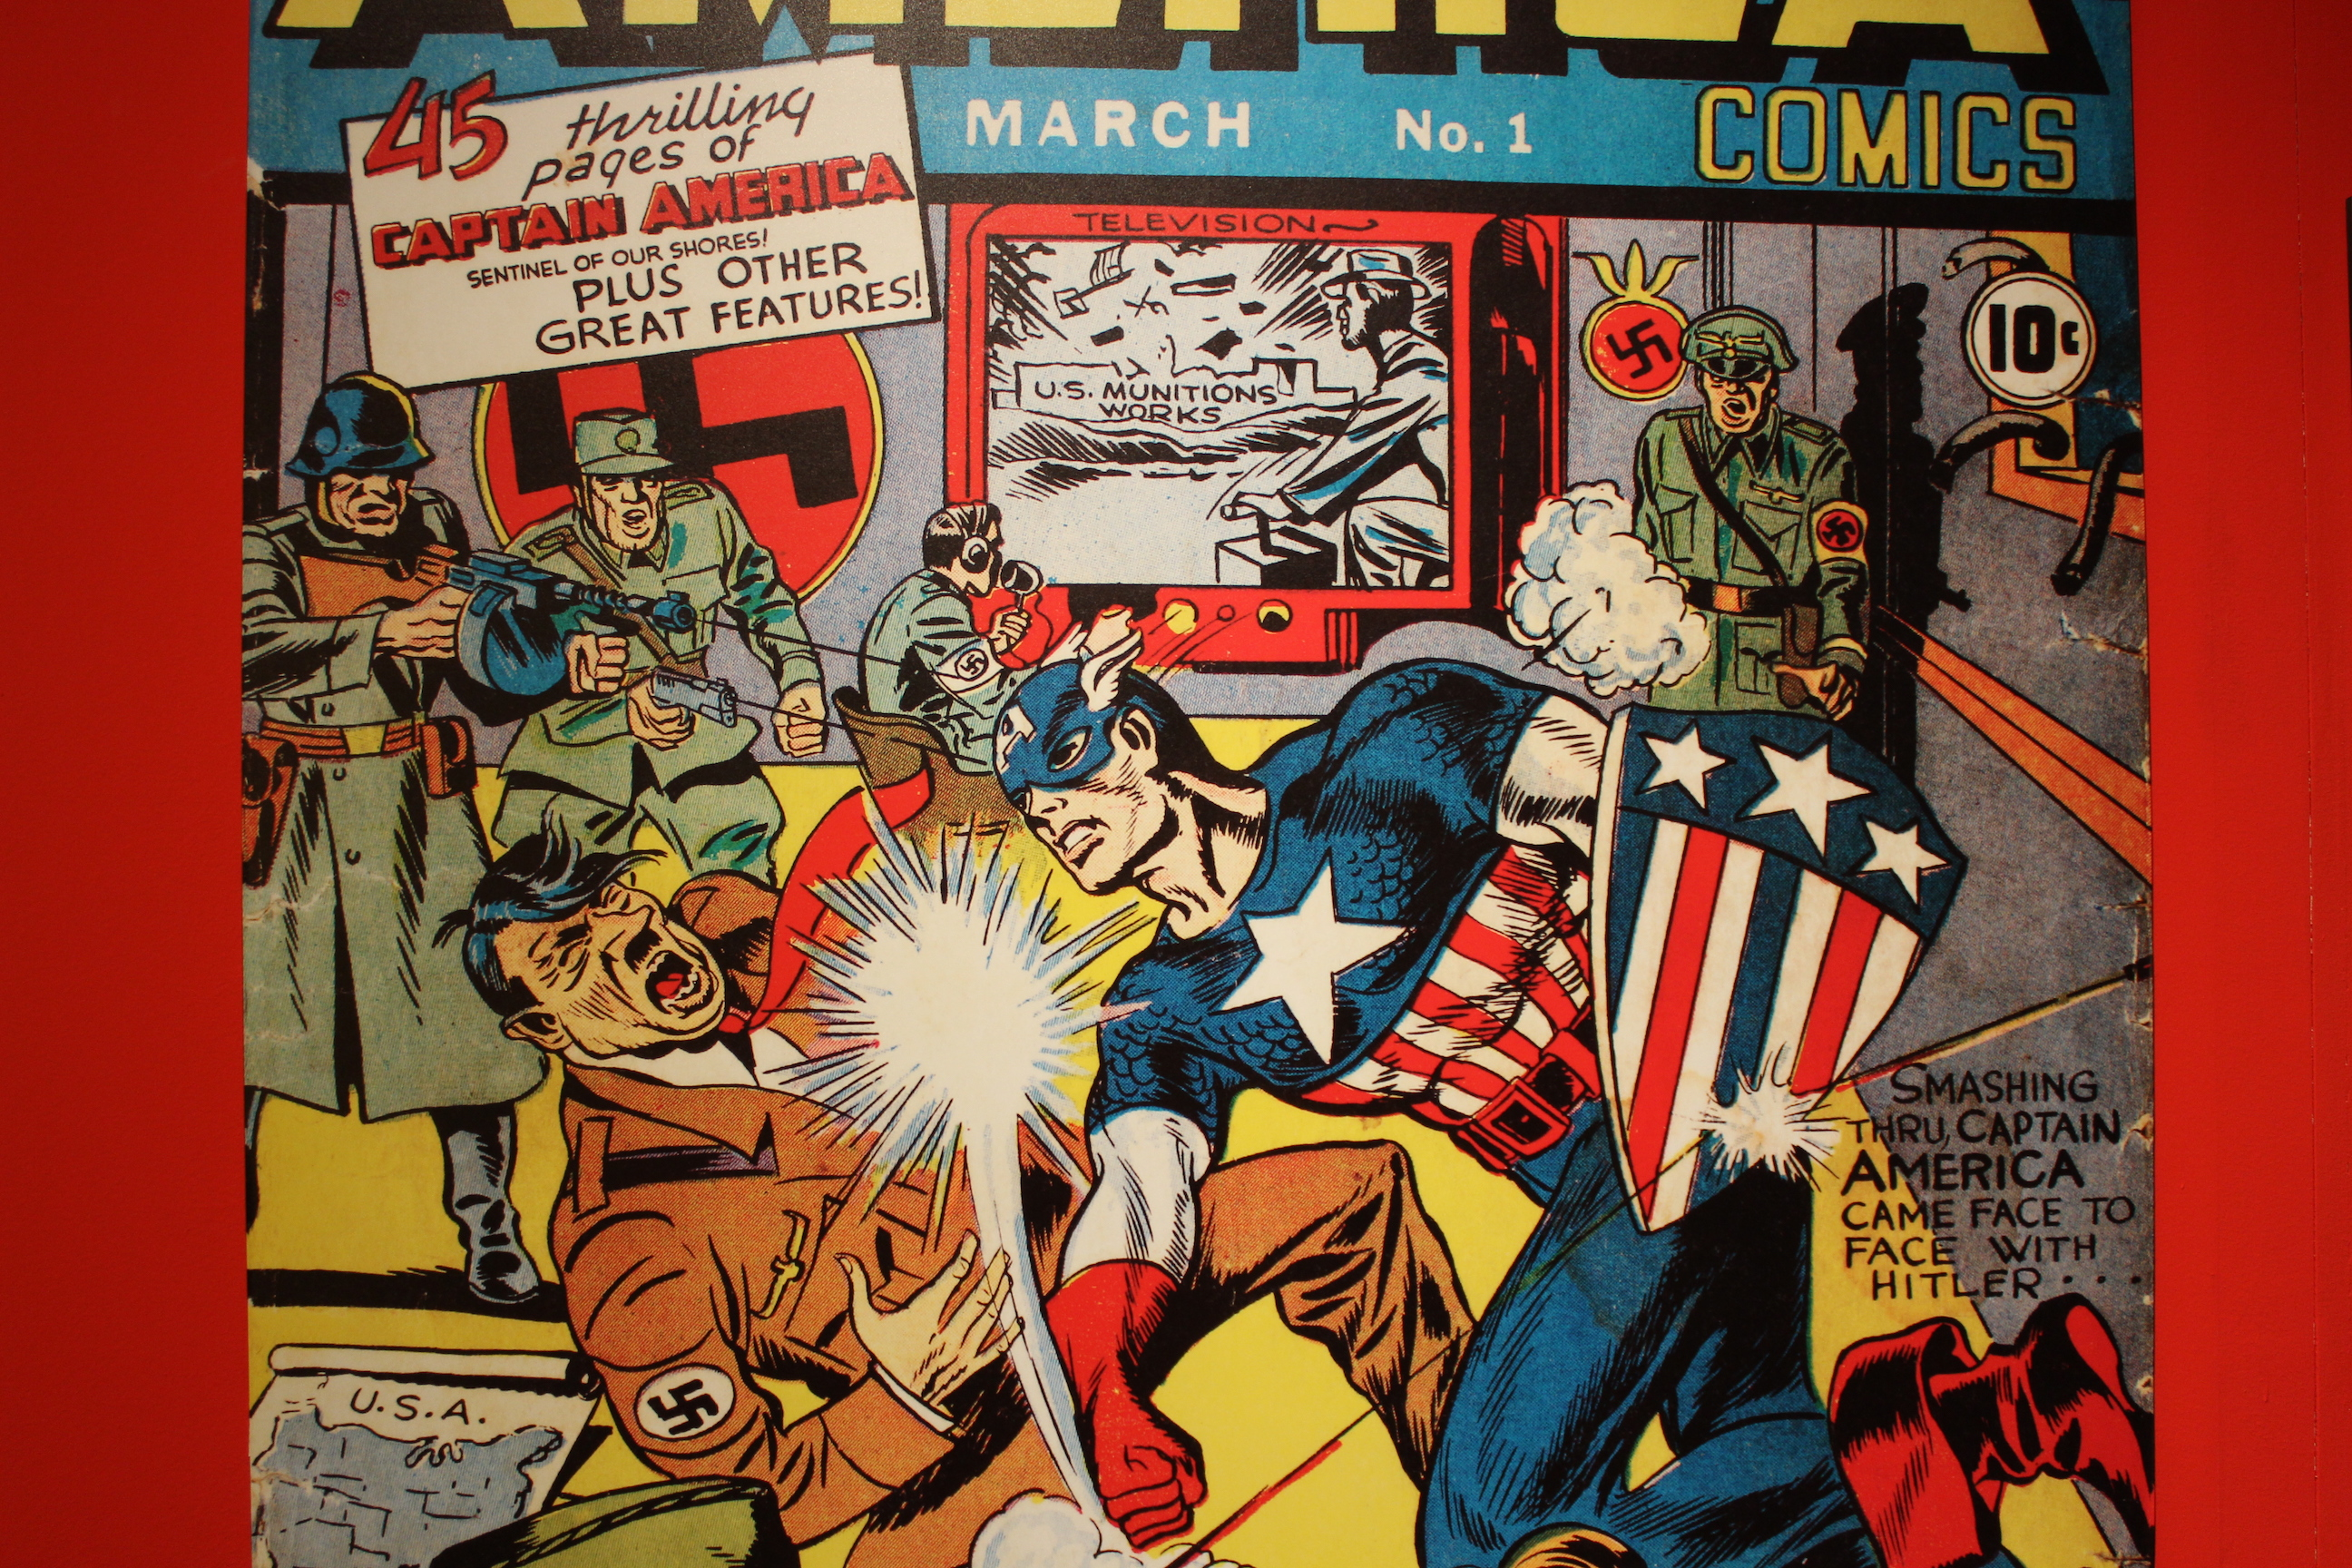 Captain America punching Hitler remains an iconic, museum-worthy bit of art.